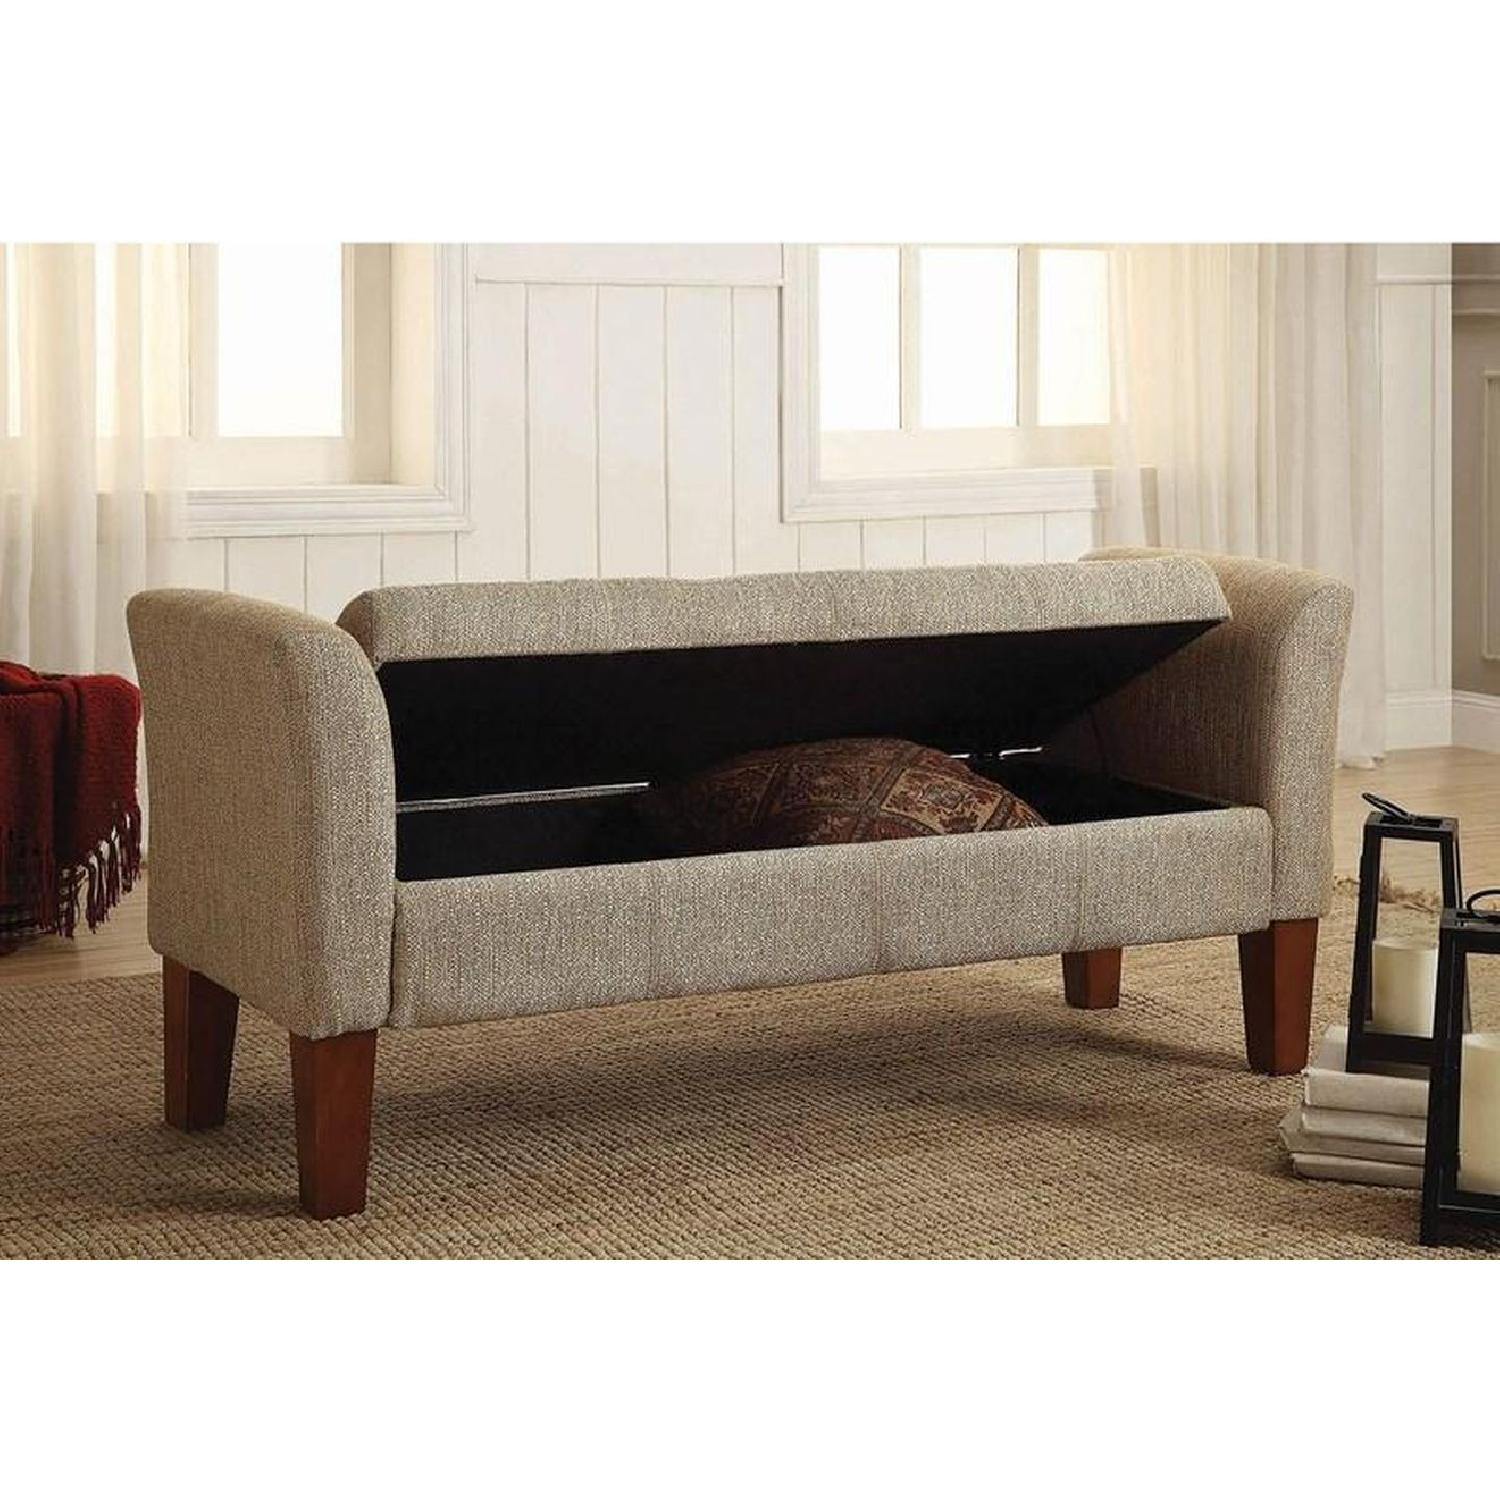 Storage Bench Upholstered In Tan Woven Fabric - image-3